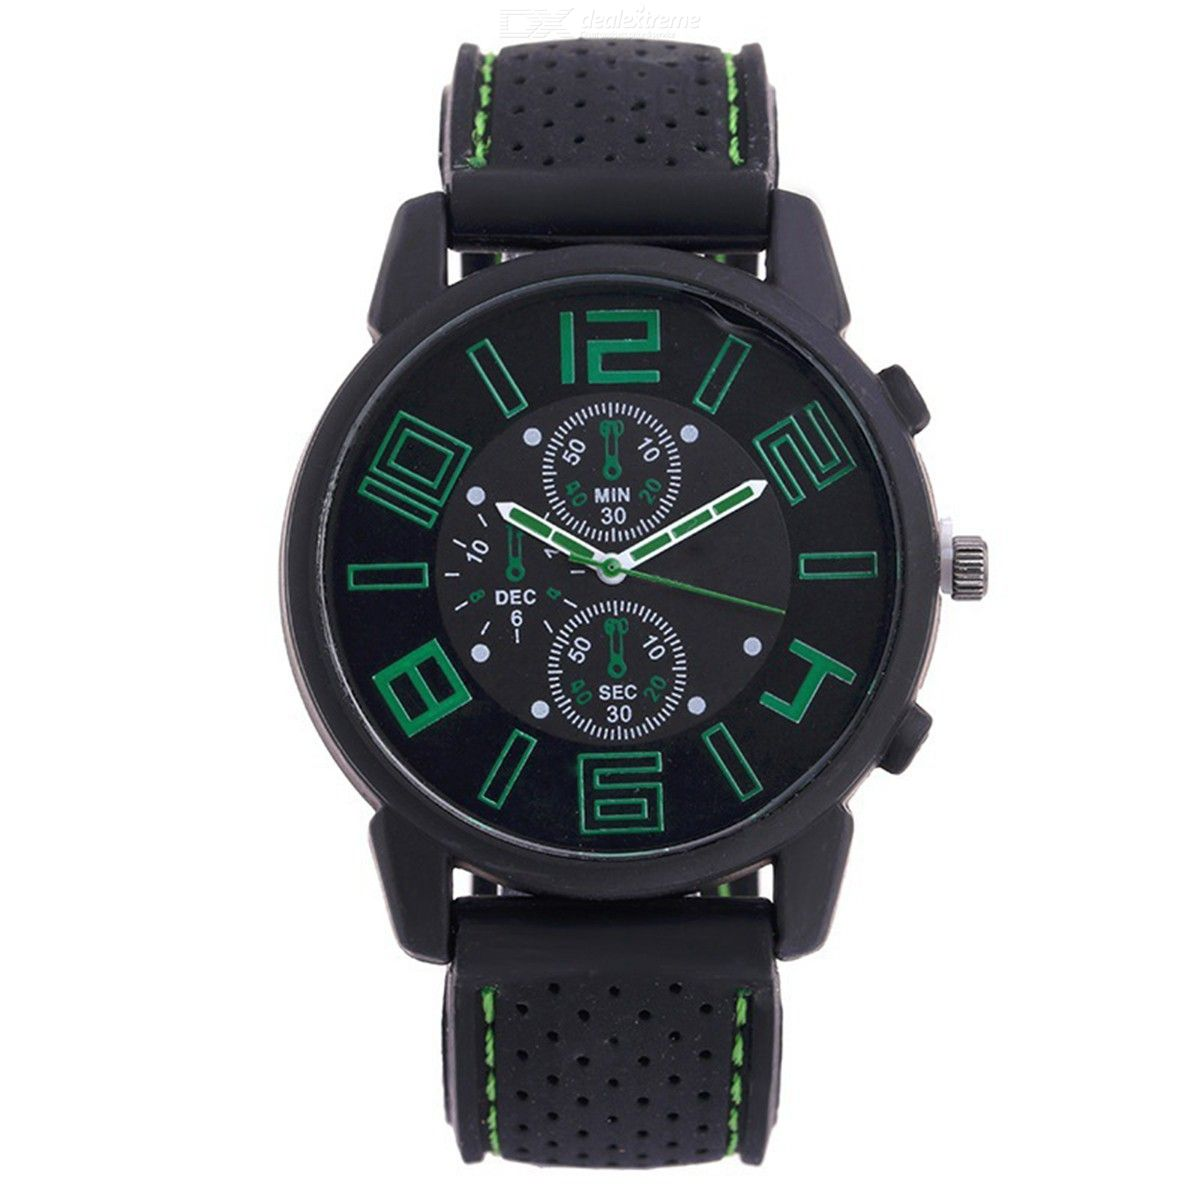 Casual Mens Wrist Watch Fashion Analog Watch With Leather Band